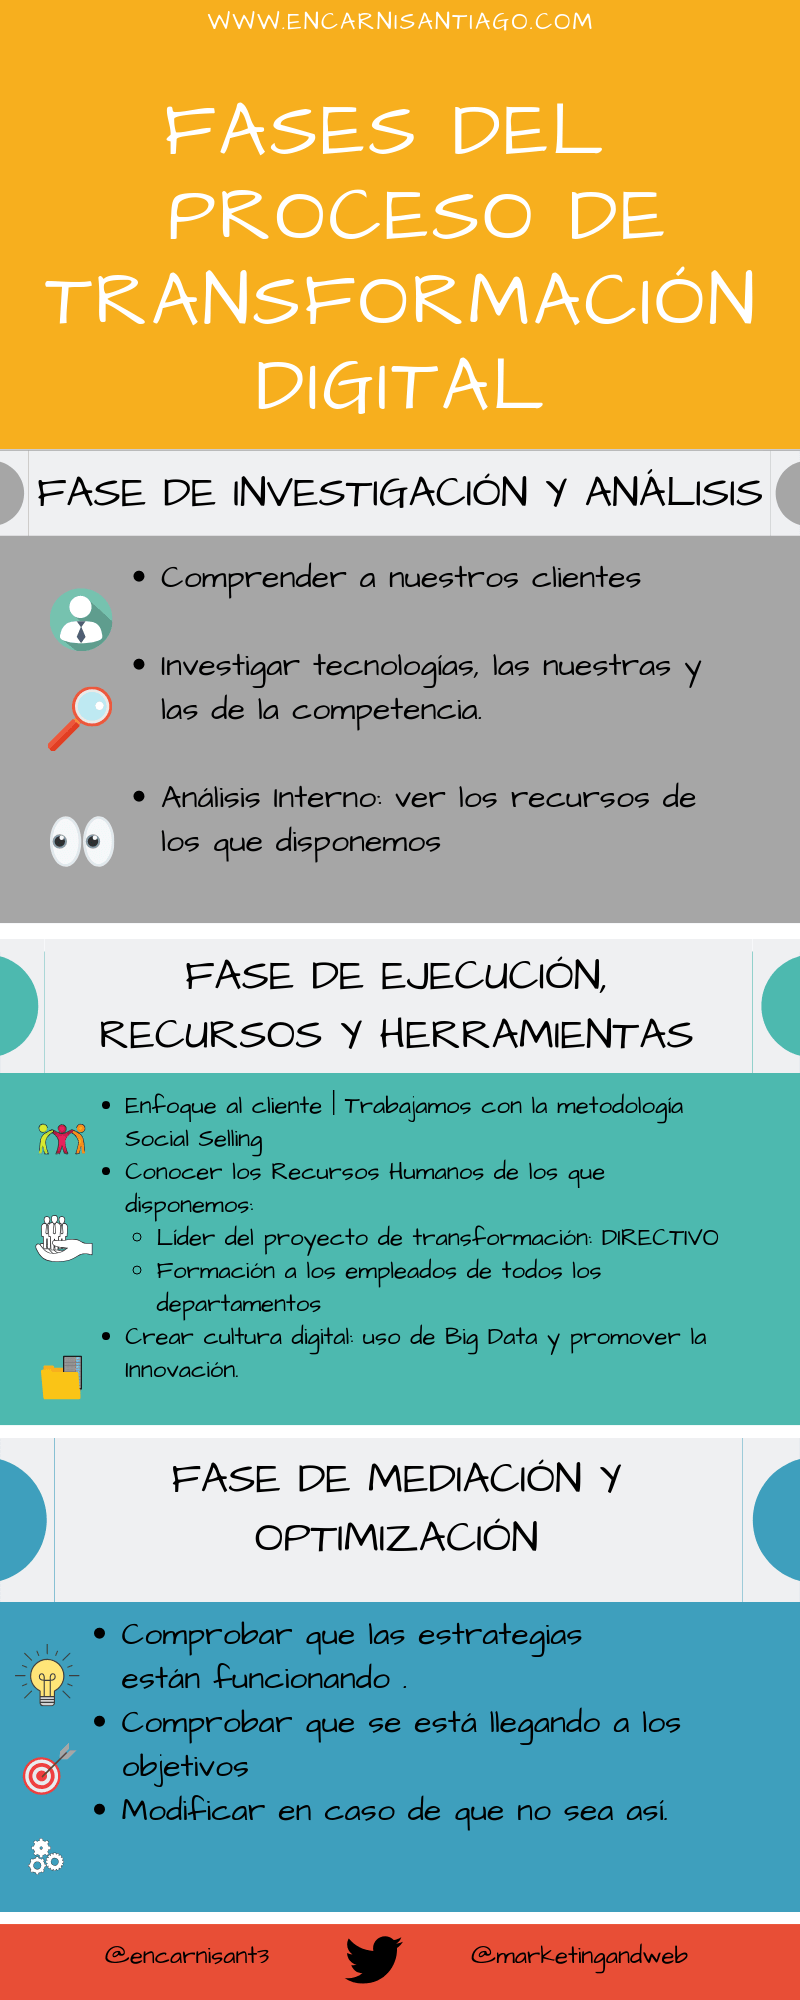 fases de la transformacion digital